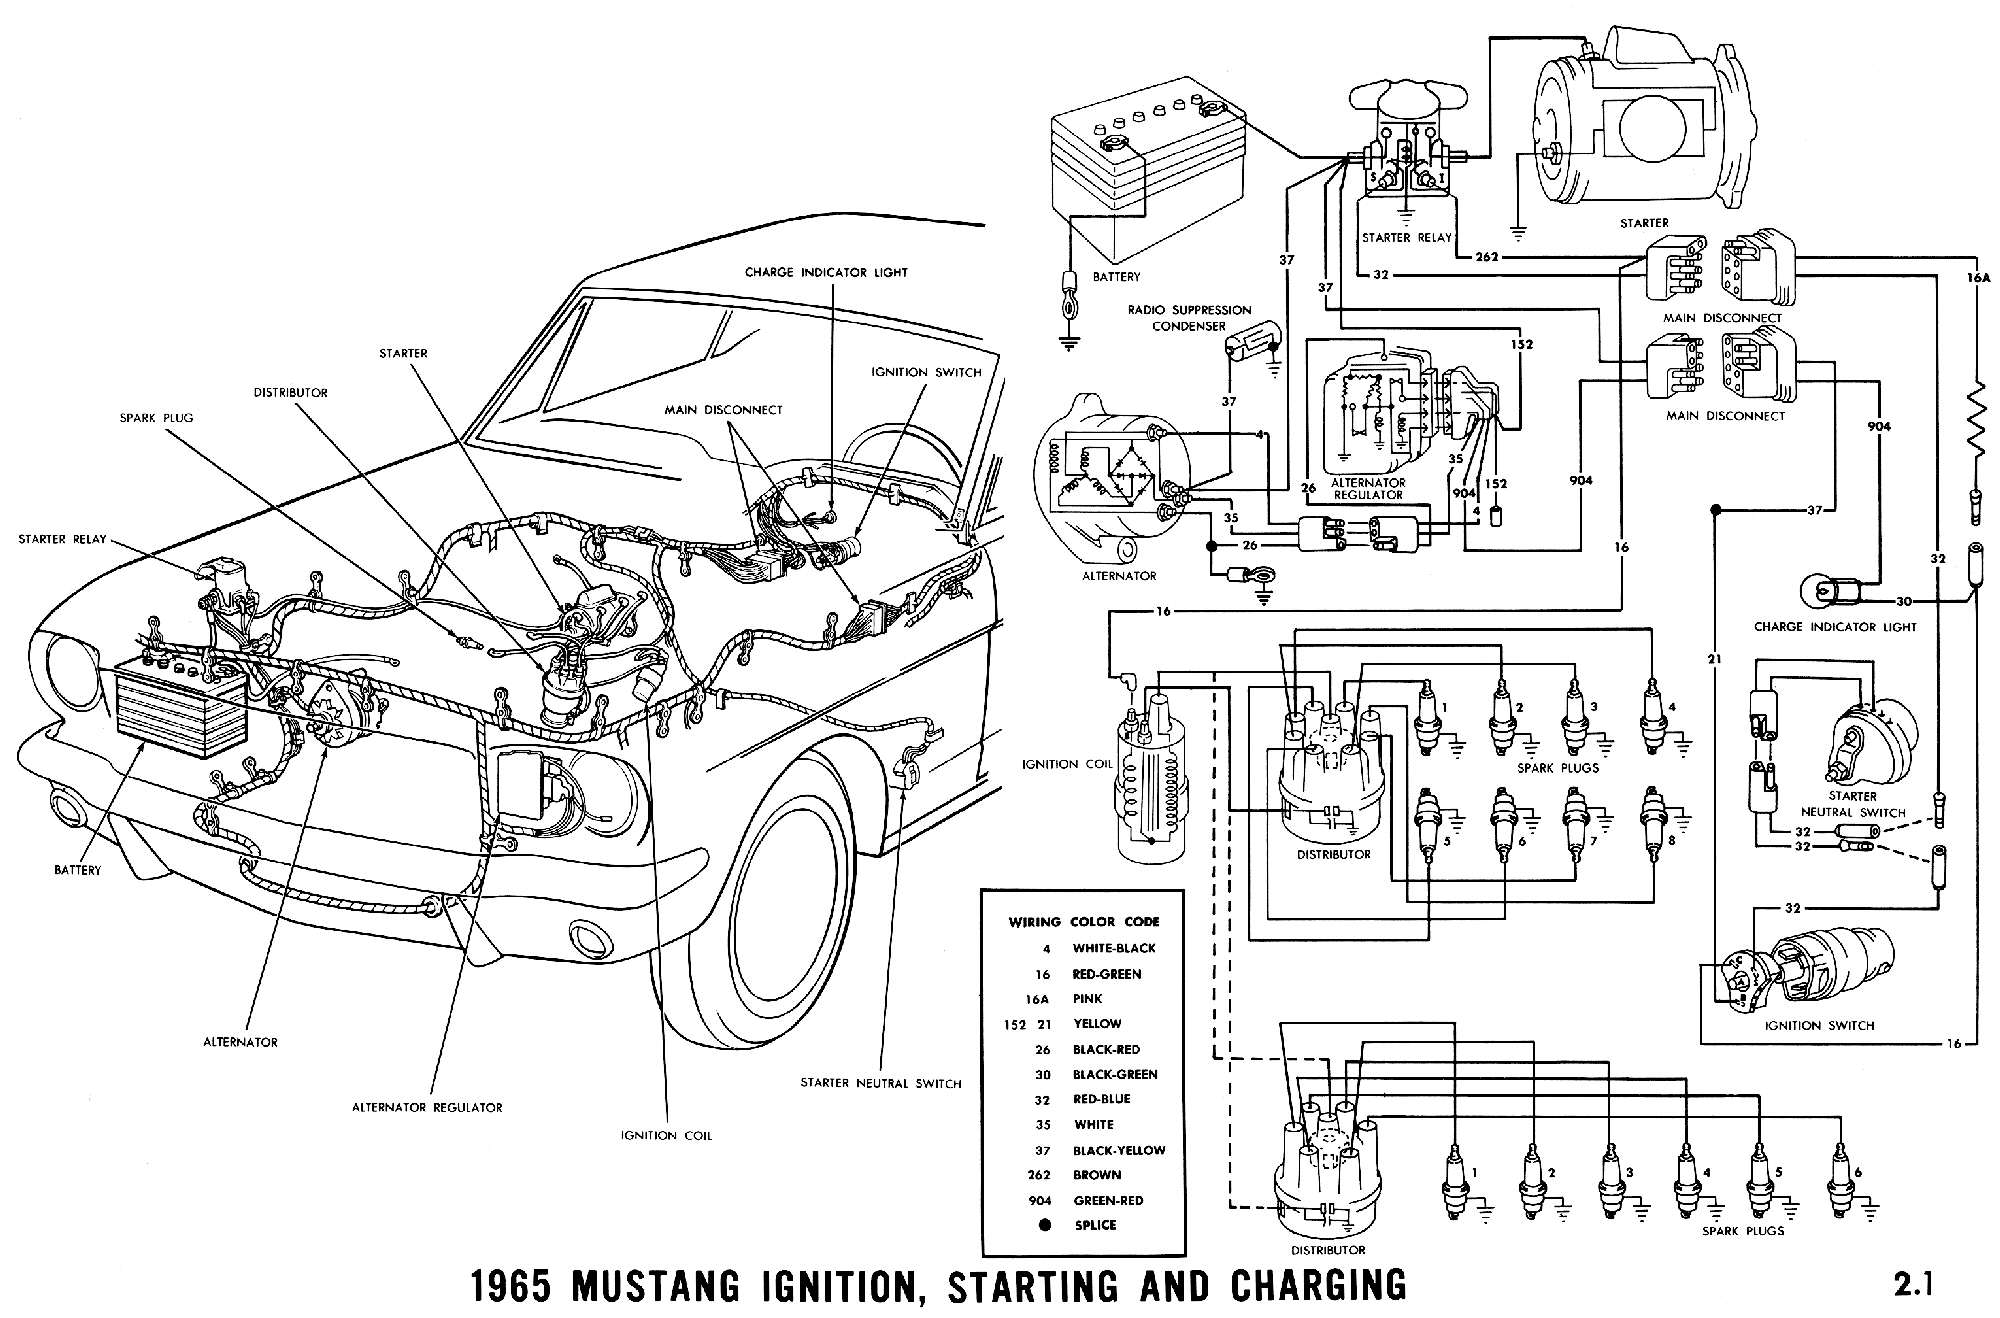 Ford Model A Coupe Windshield Diagram Electrical Wiring 1926 1965 Mustang Ignition Starting And Charging Pictorial T